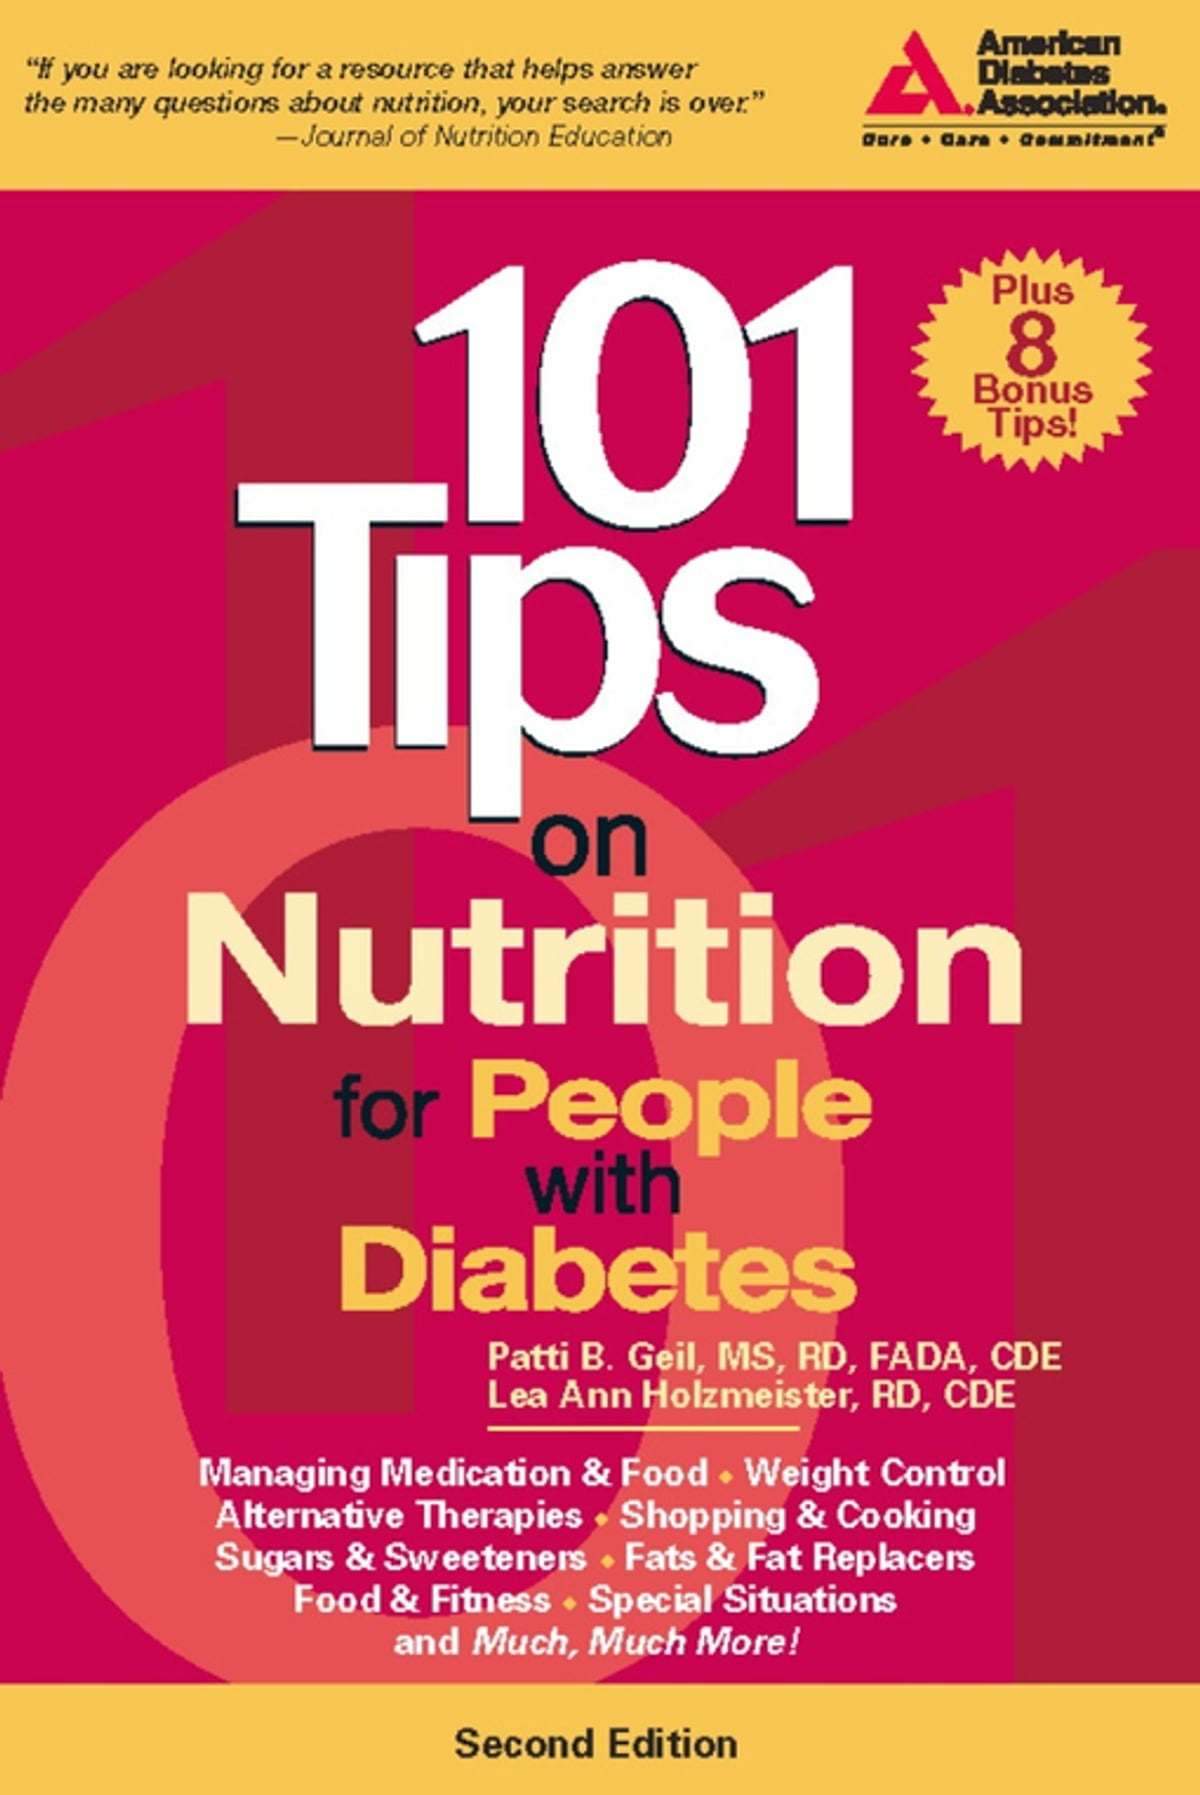 101 Tips on Nutrition for People with Diabetes eBook by Patti B. Geil, R.D.  - 9781580404044 | Rakuten Kobo